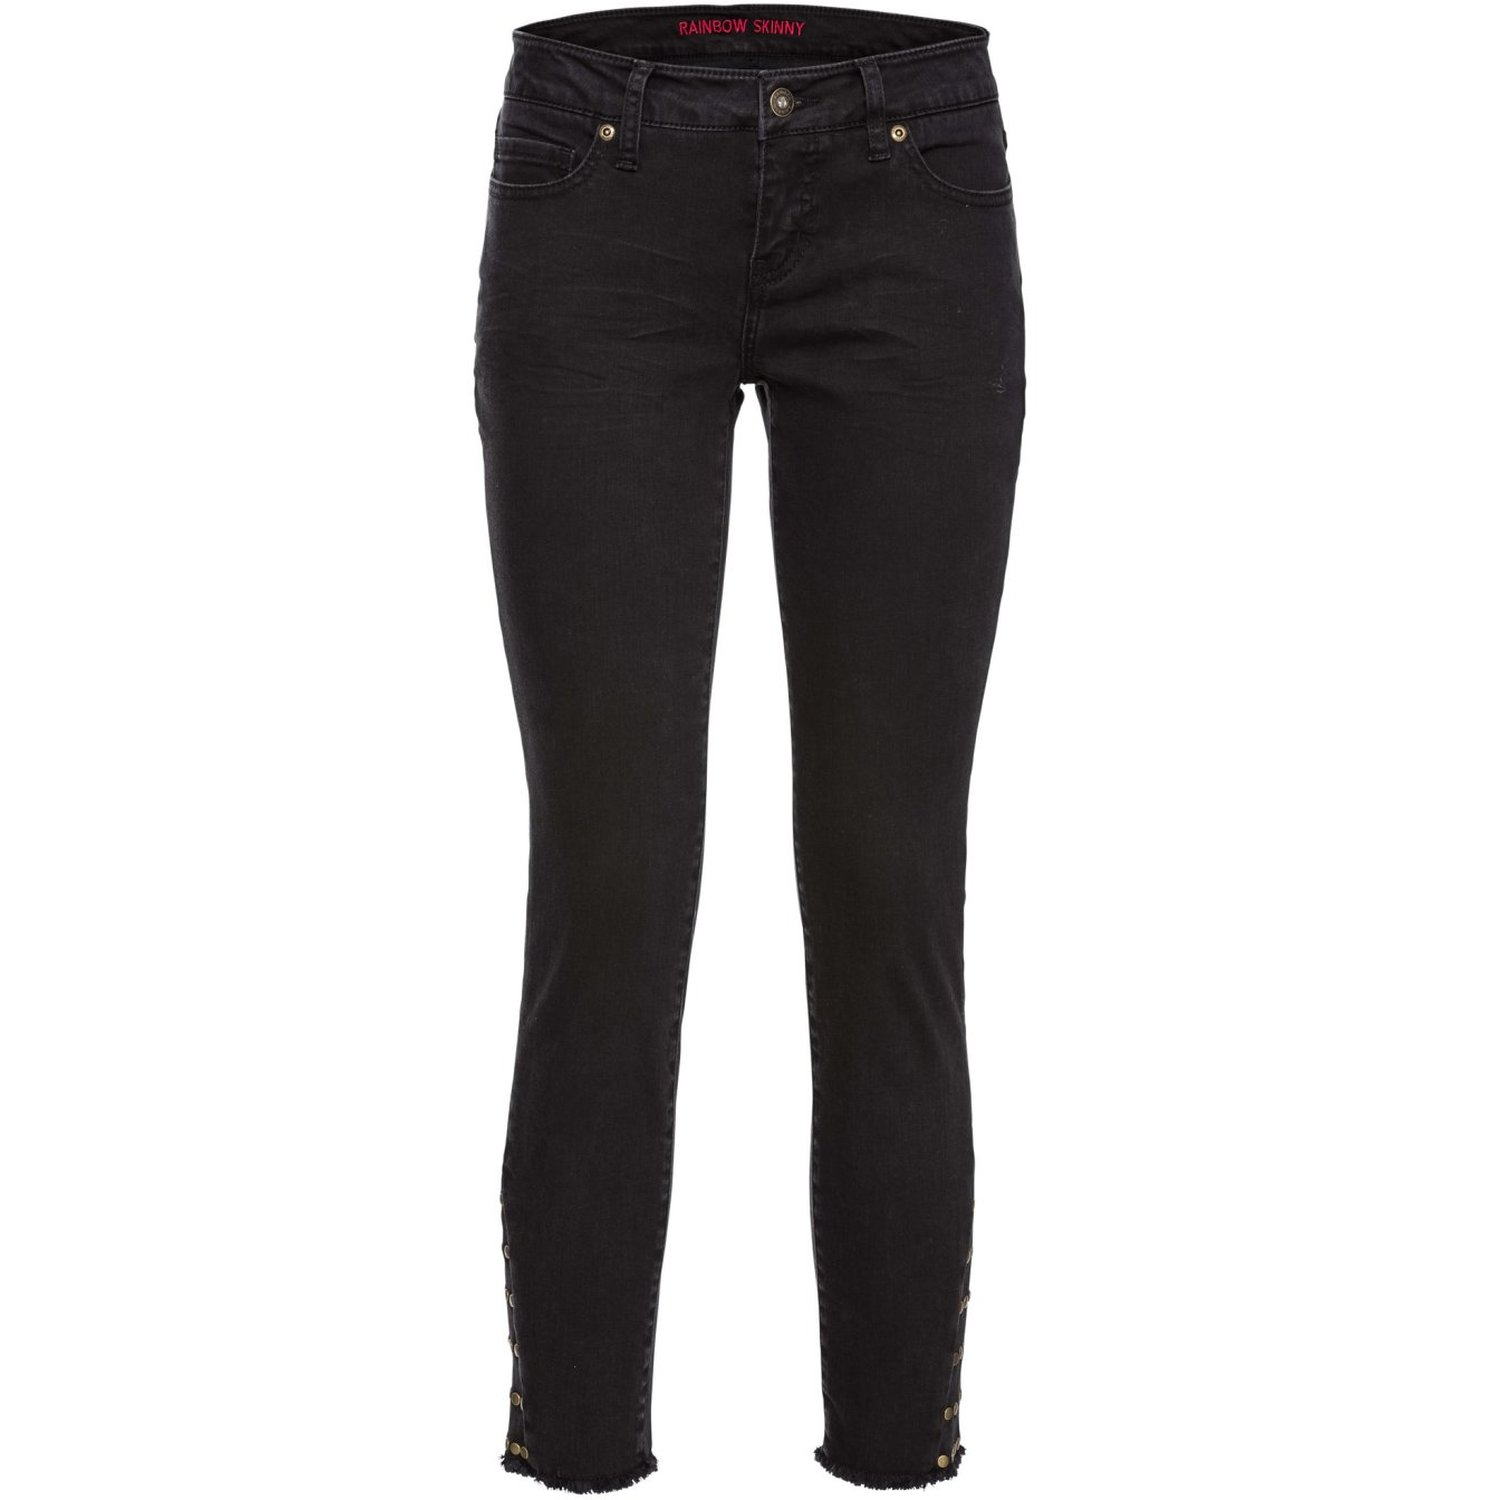 Damen Skinny Jeans mit Nieten am Saum, in Black Denim